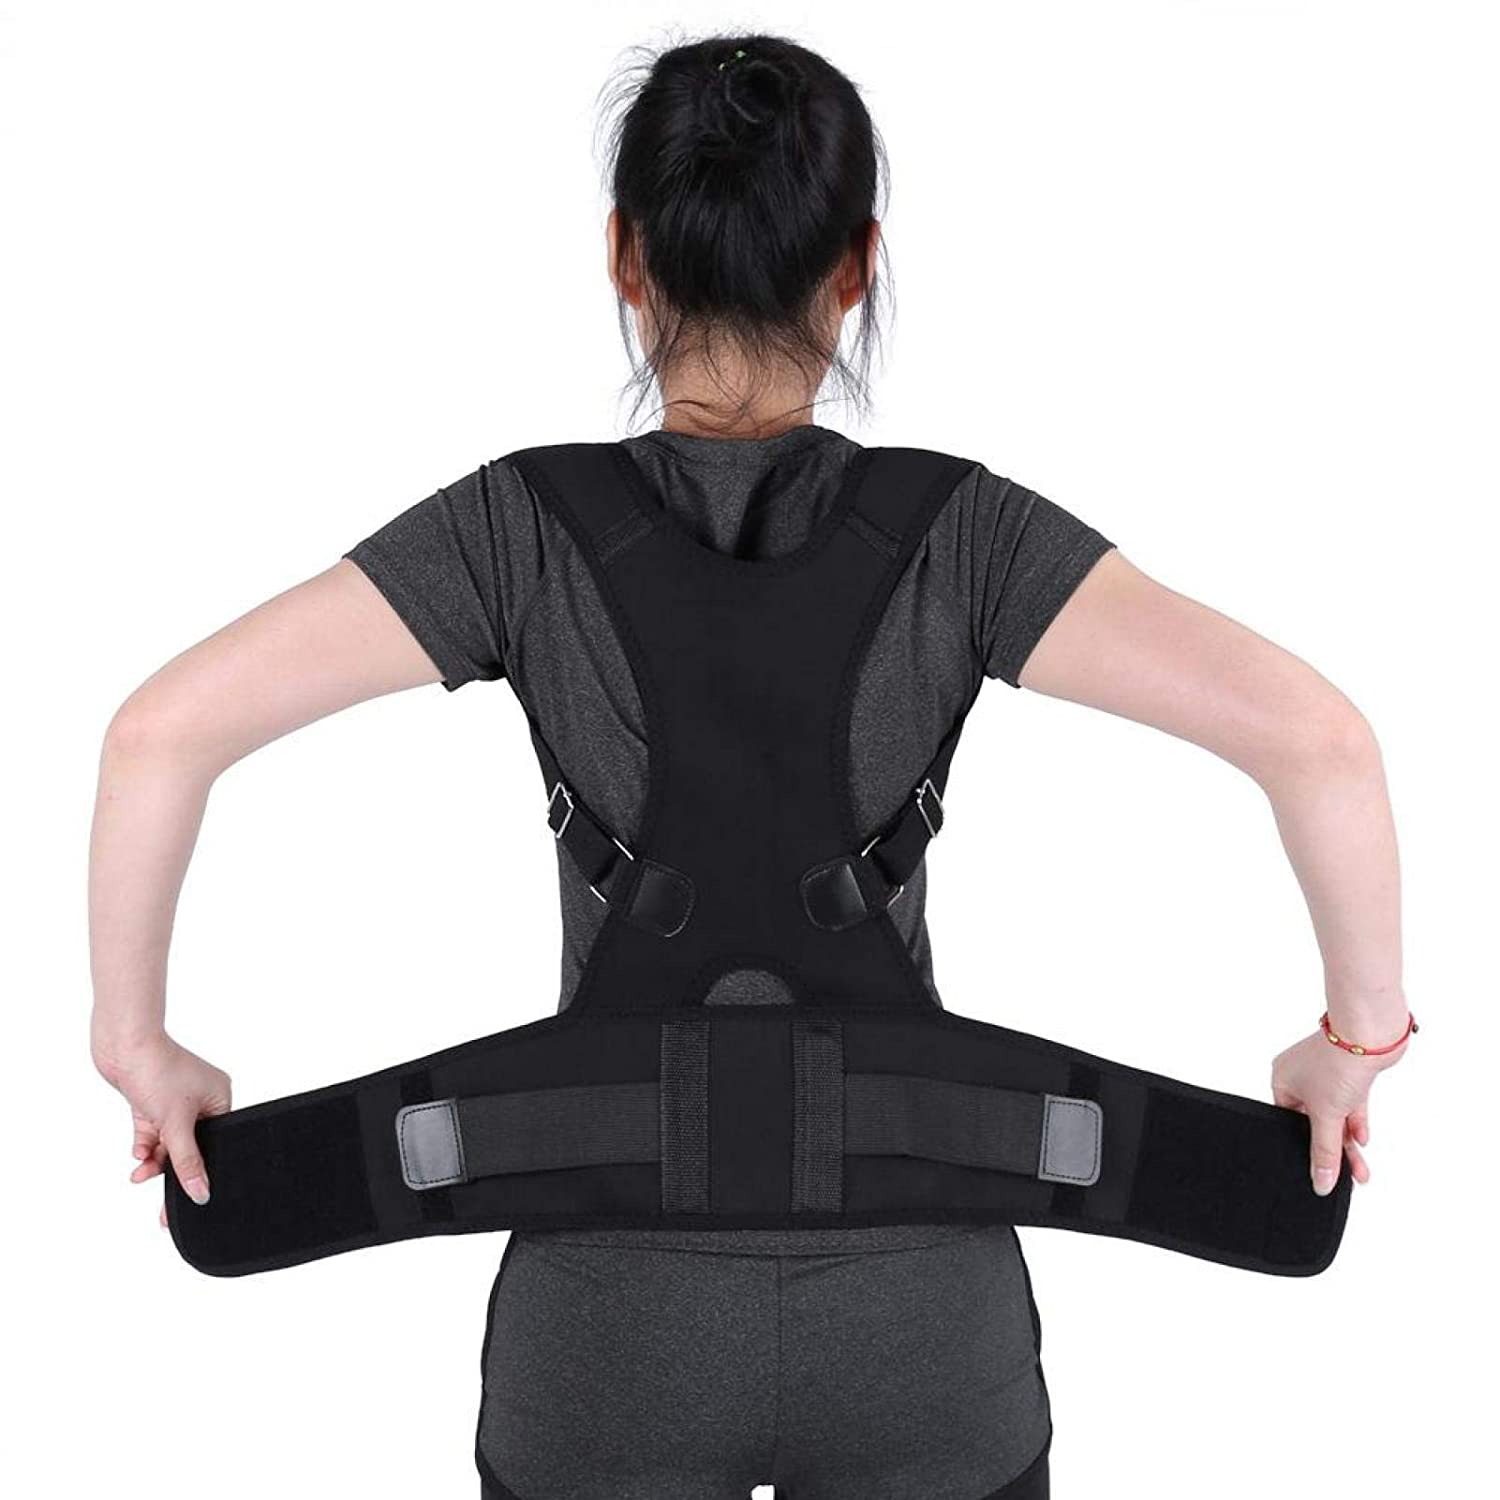 Posture Challenge the lowest price of Japan ☆ Corrector Adjustable Back Luxury Brace Suppor Lumbar Belts with